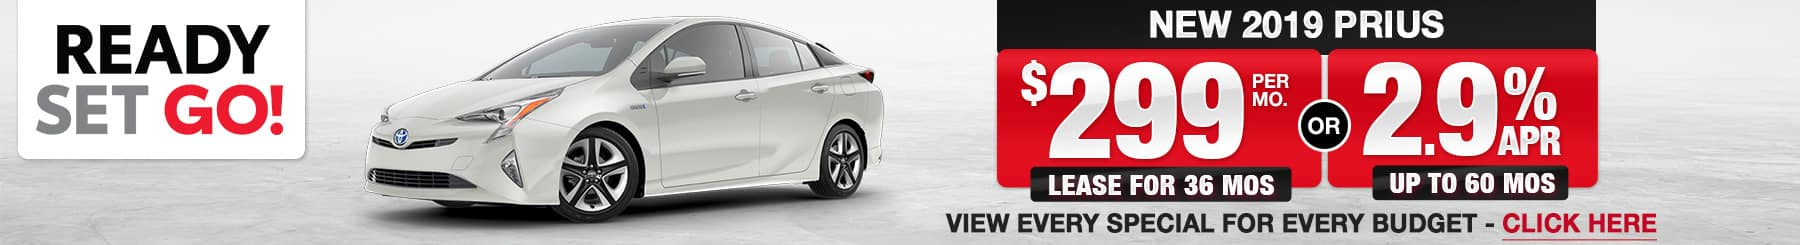 Toyota Prius Lease Finance Specials